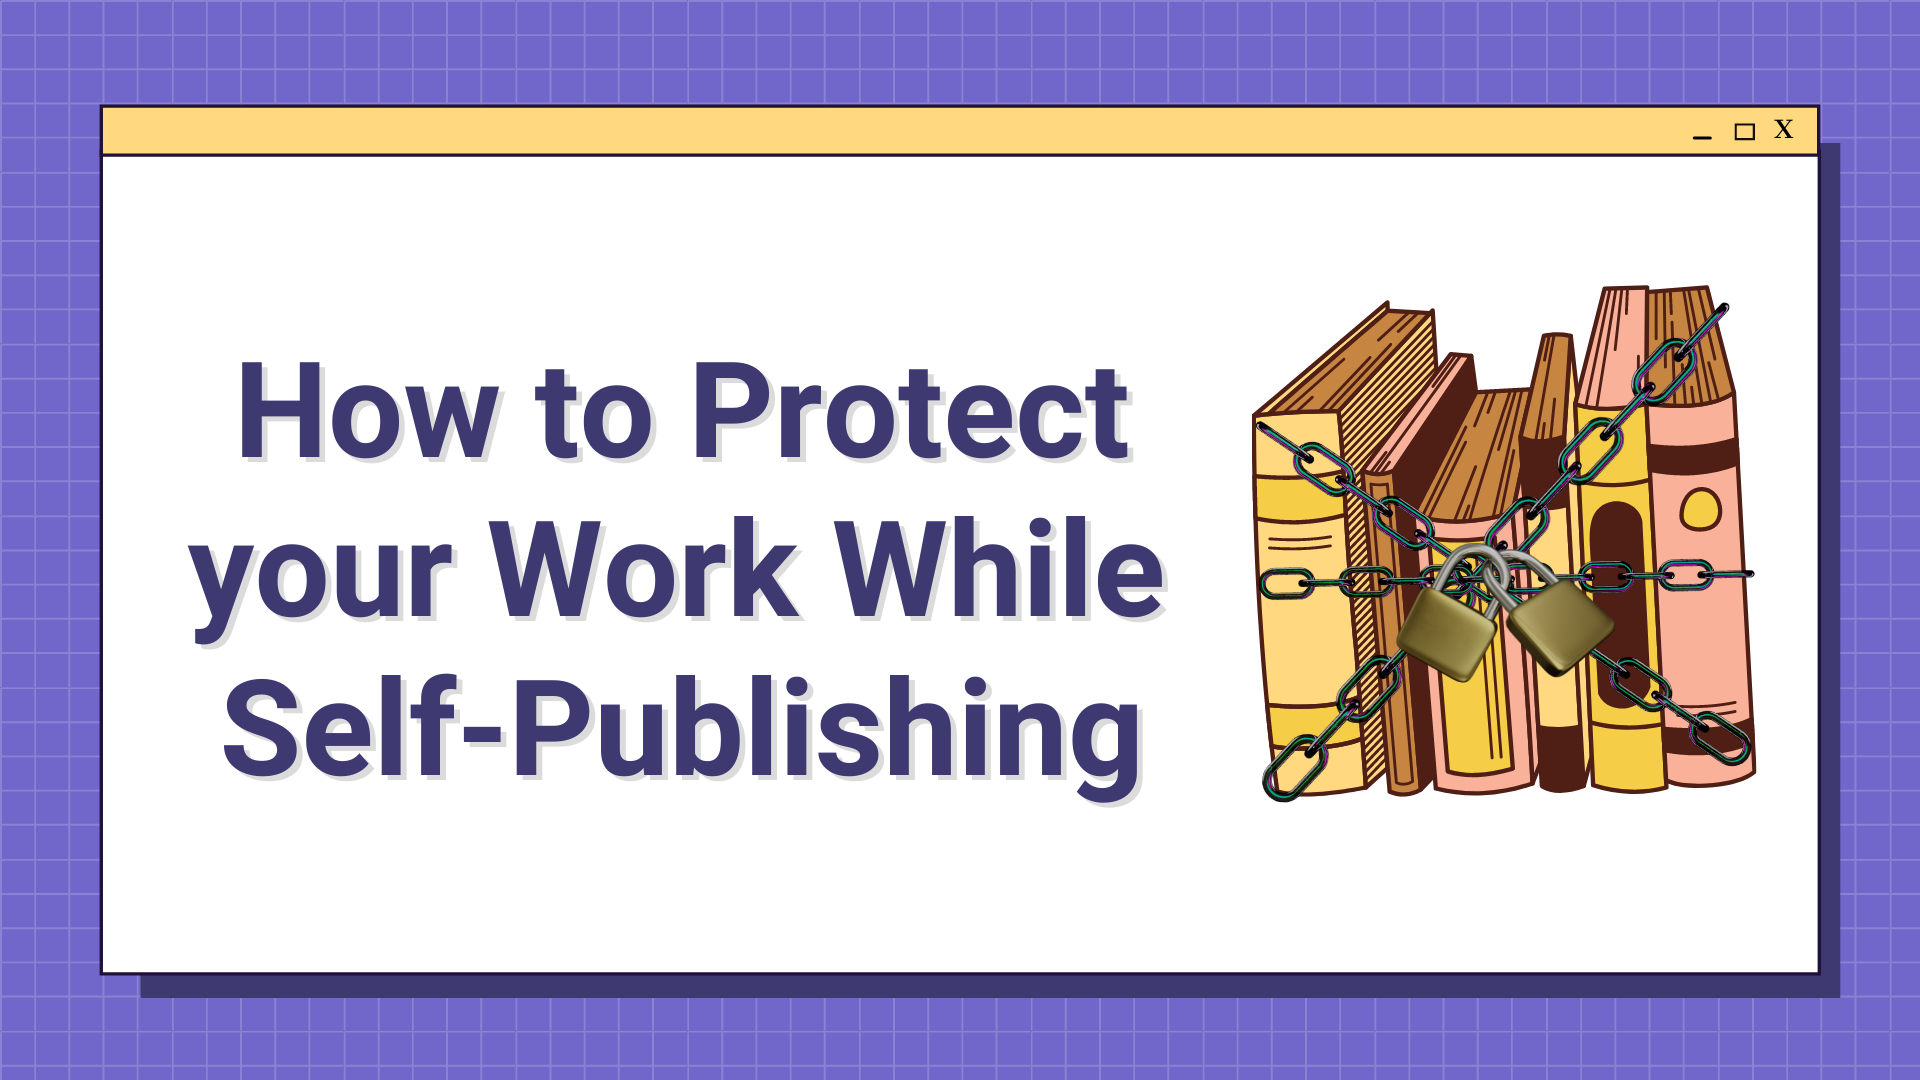 Protect your Work While Self-Publishing